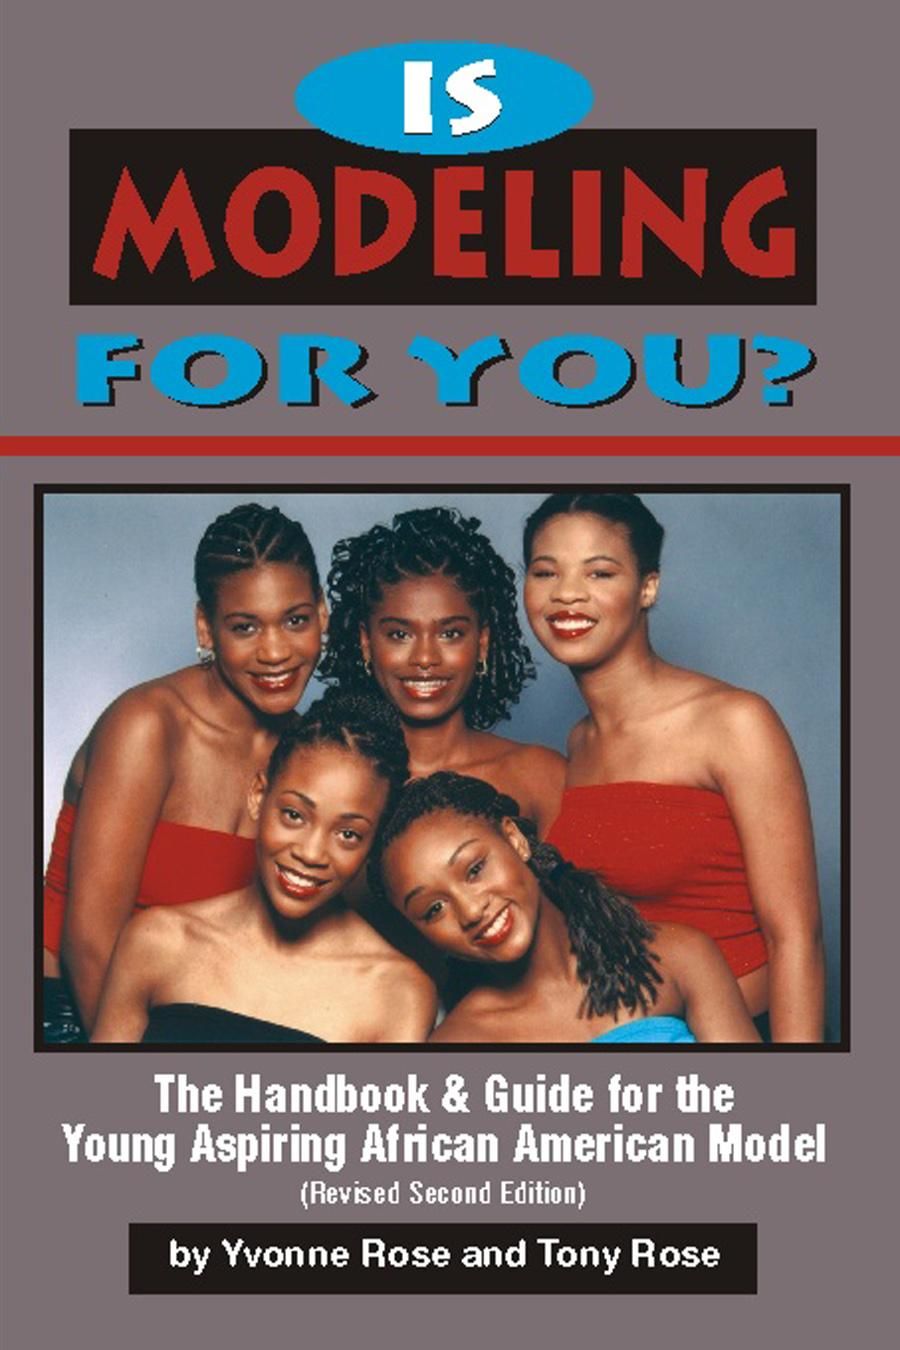 Is Modeling for You (Revised Second Edition) - The Handbook and Guide for the Young Aspiring African American Model